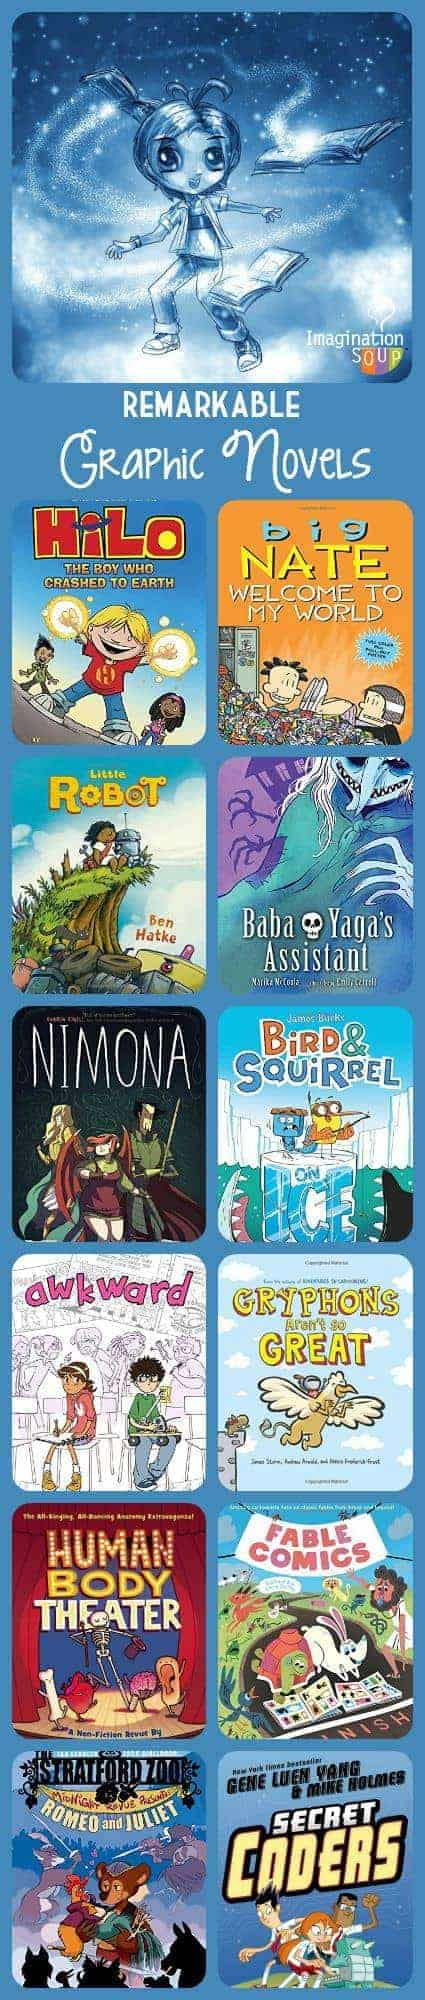 fall 2015 new graphic novels for kids